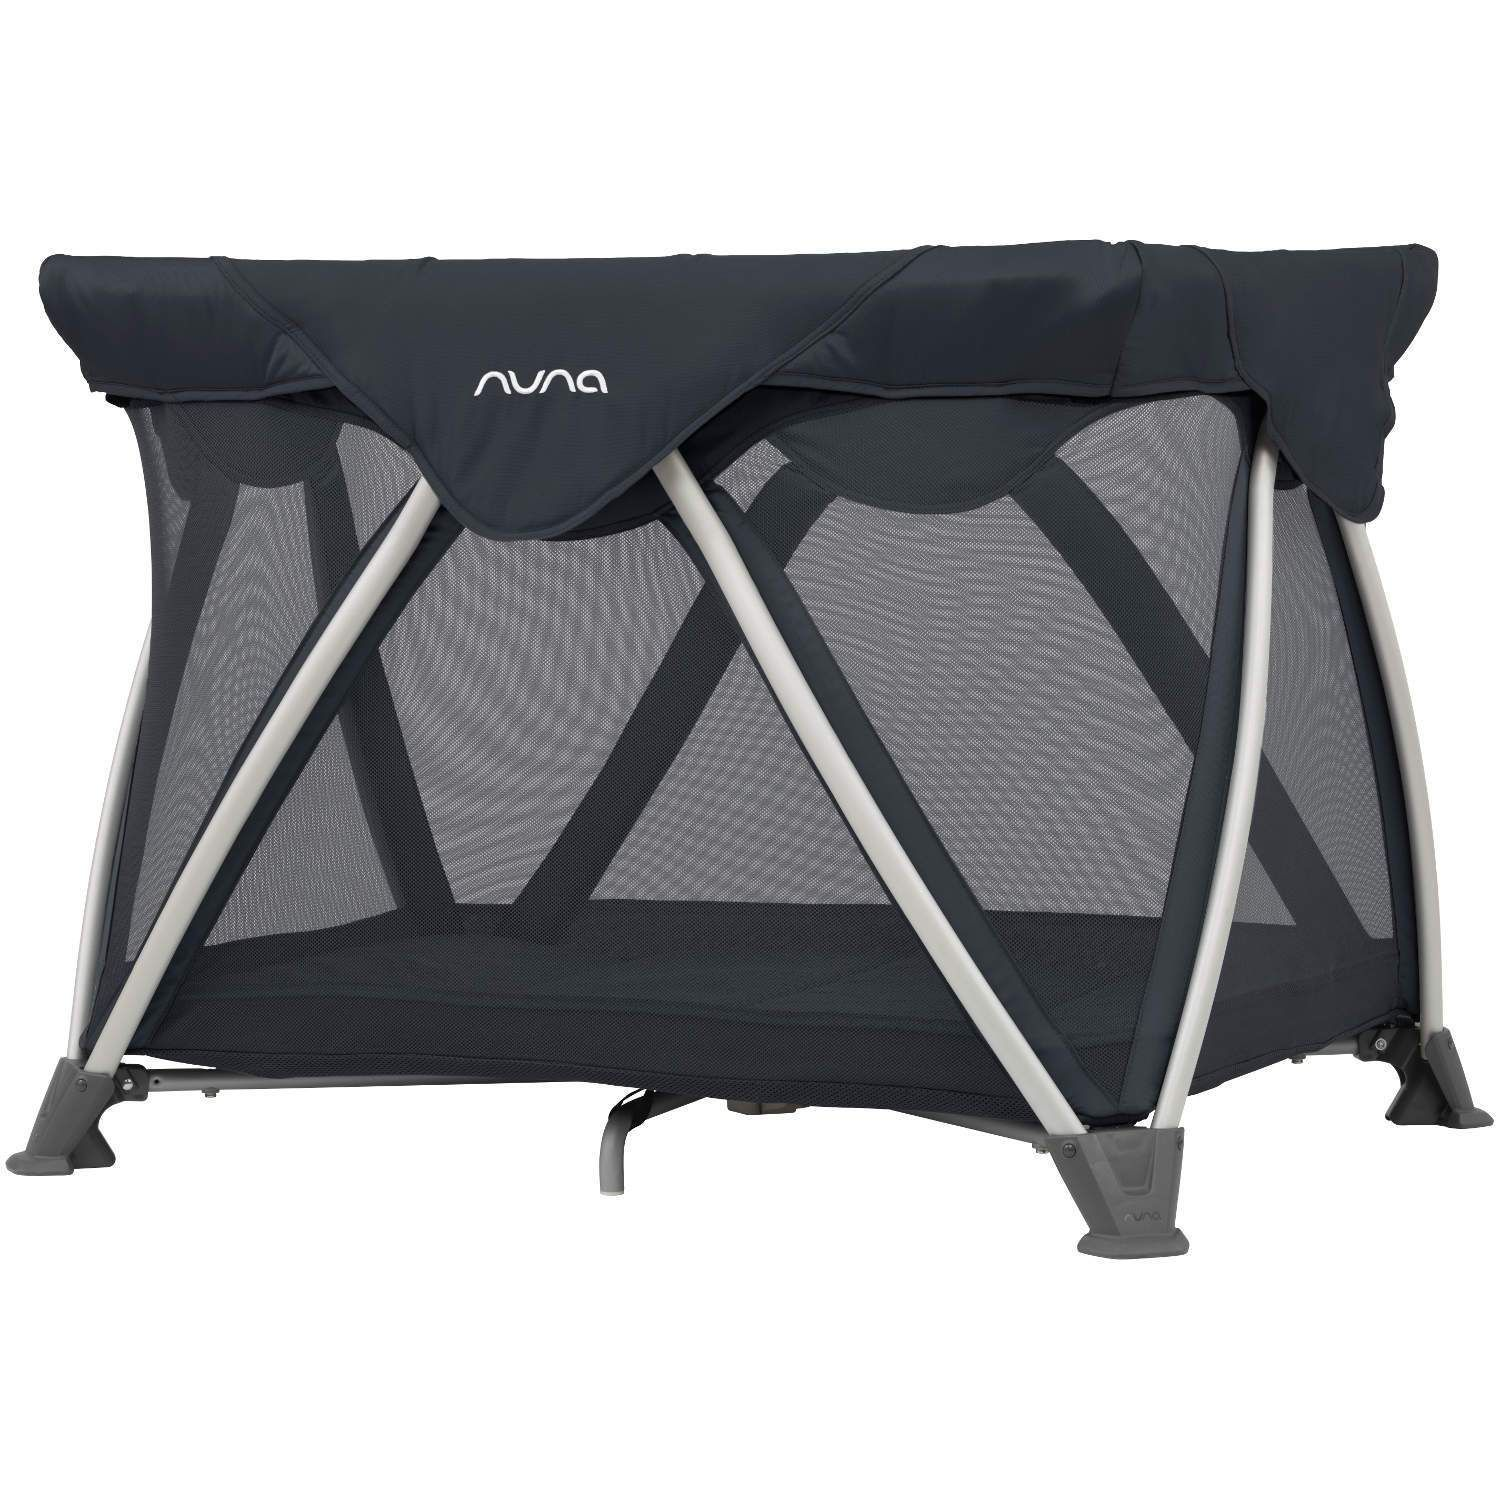 Nuna Sena Aire Travel Crib + Playard 2019 Cribs, Clever